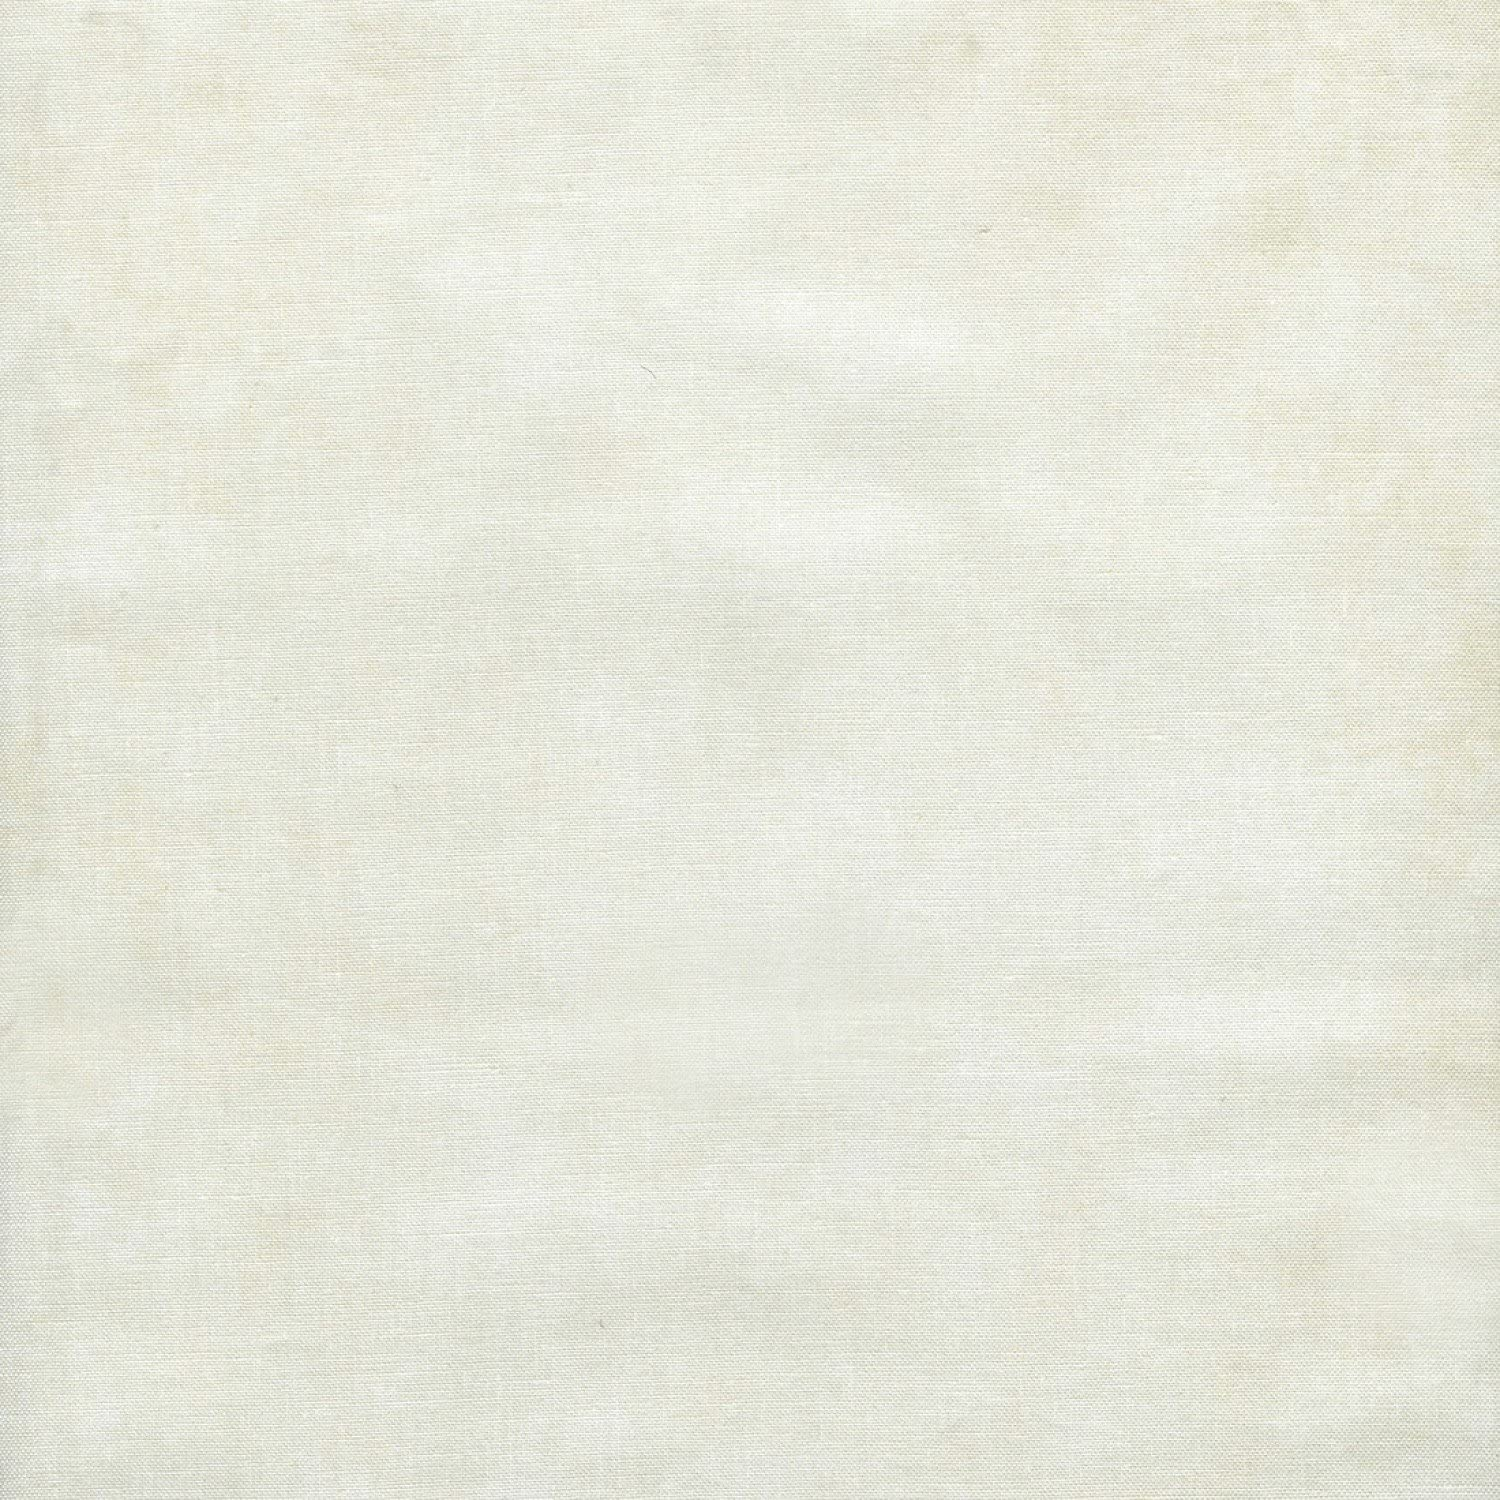 Shadow Play Ivory Blender Fabric MAS513-W2 from Maywood by The Yard